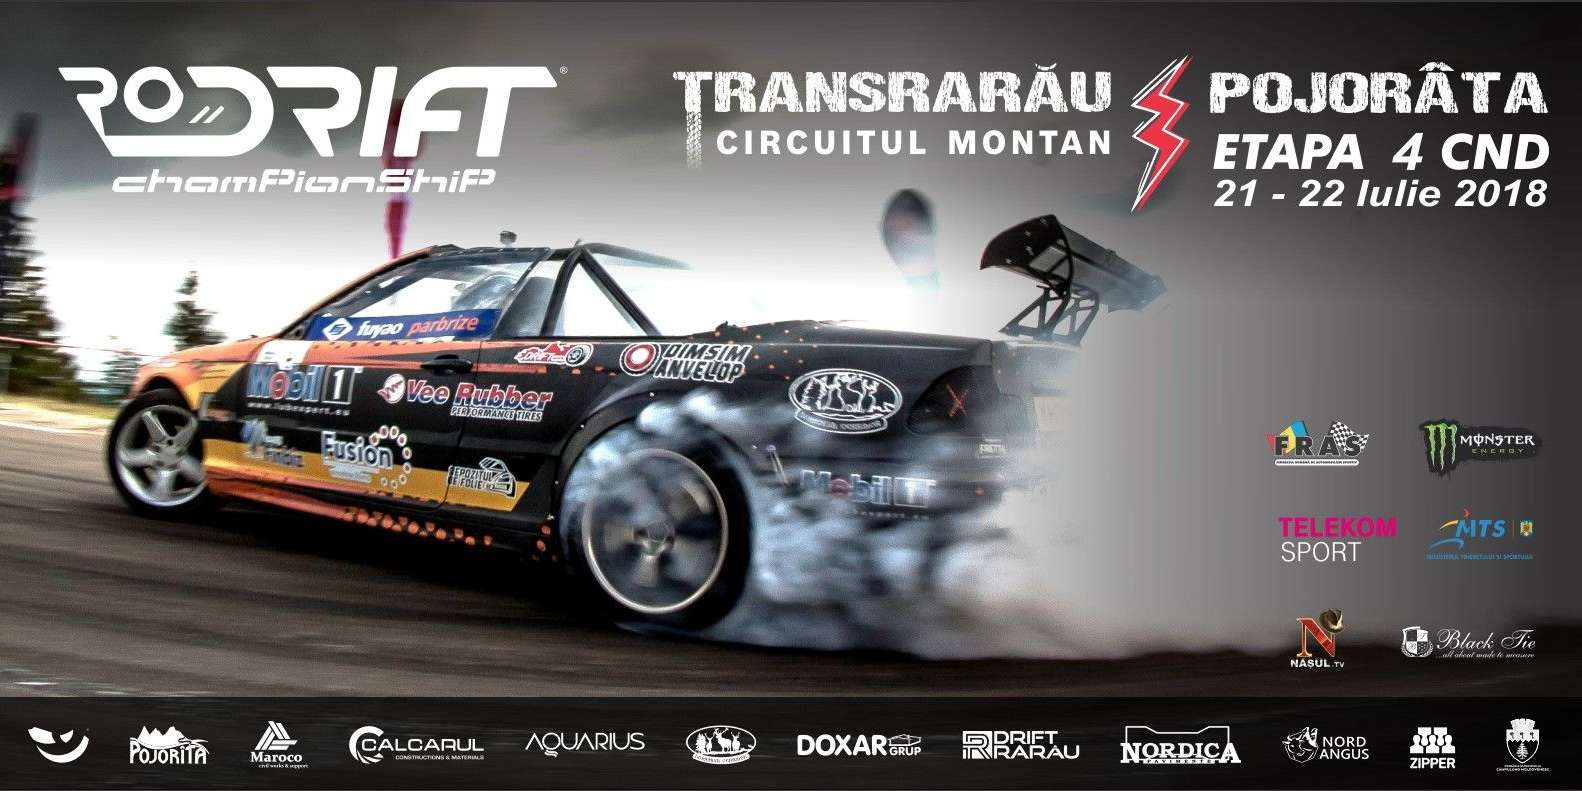 Poster for the 4th stage of the Romanian Drift Championship. We have a valid contract with the event and also have a sponsored rider in the Championship.